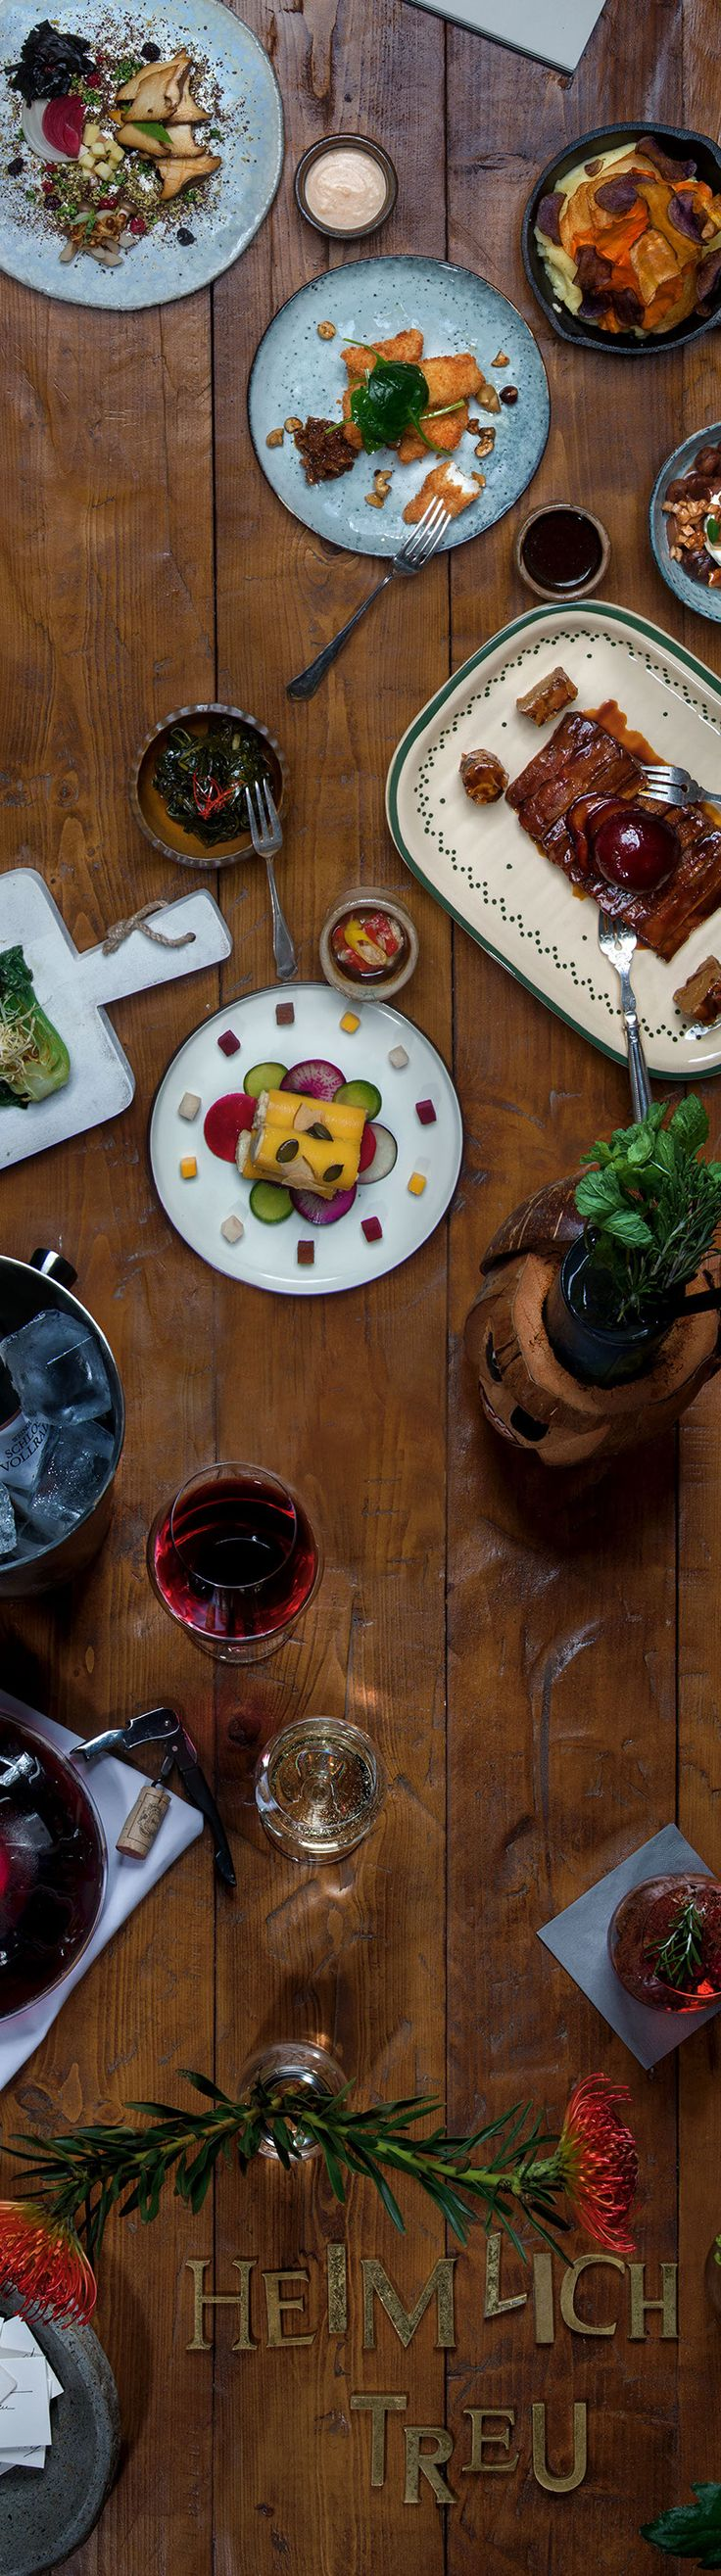 79 best restaurant images on Pinterest | Restaurant, Diners and ...